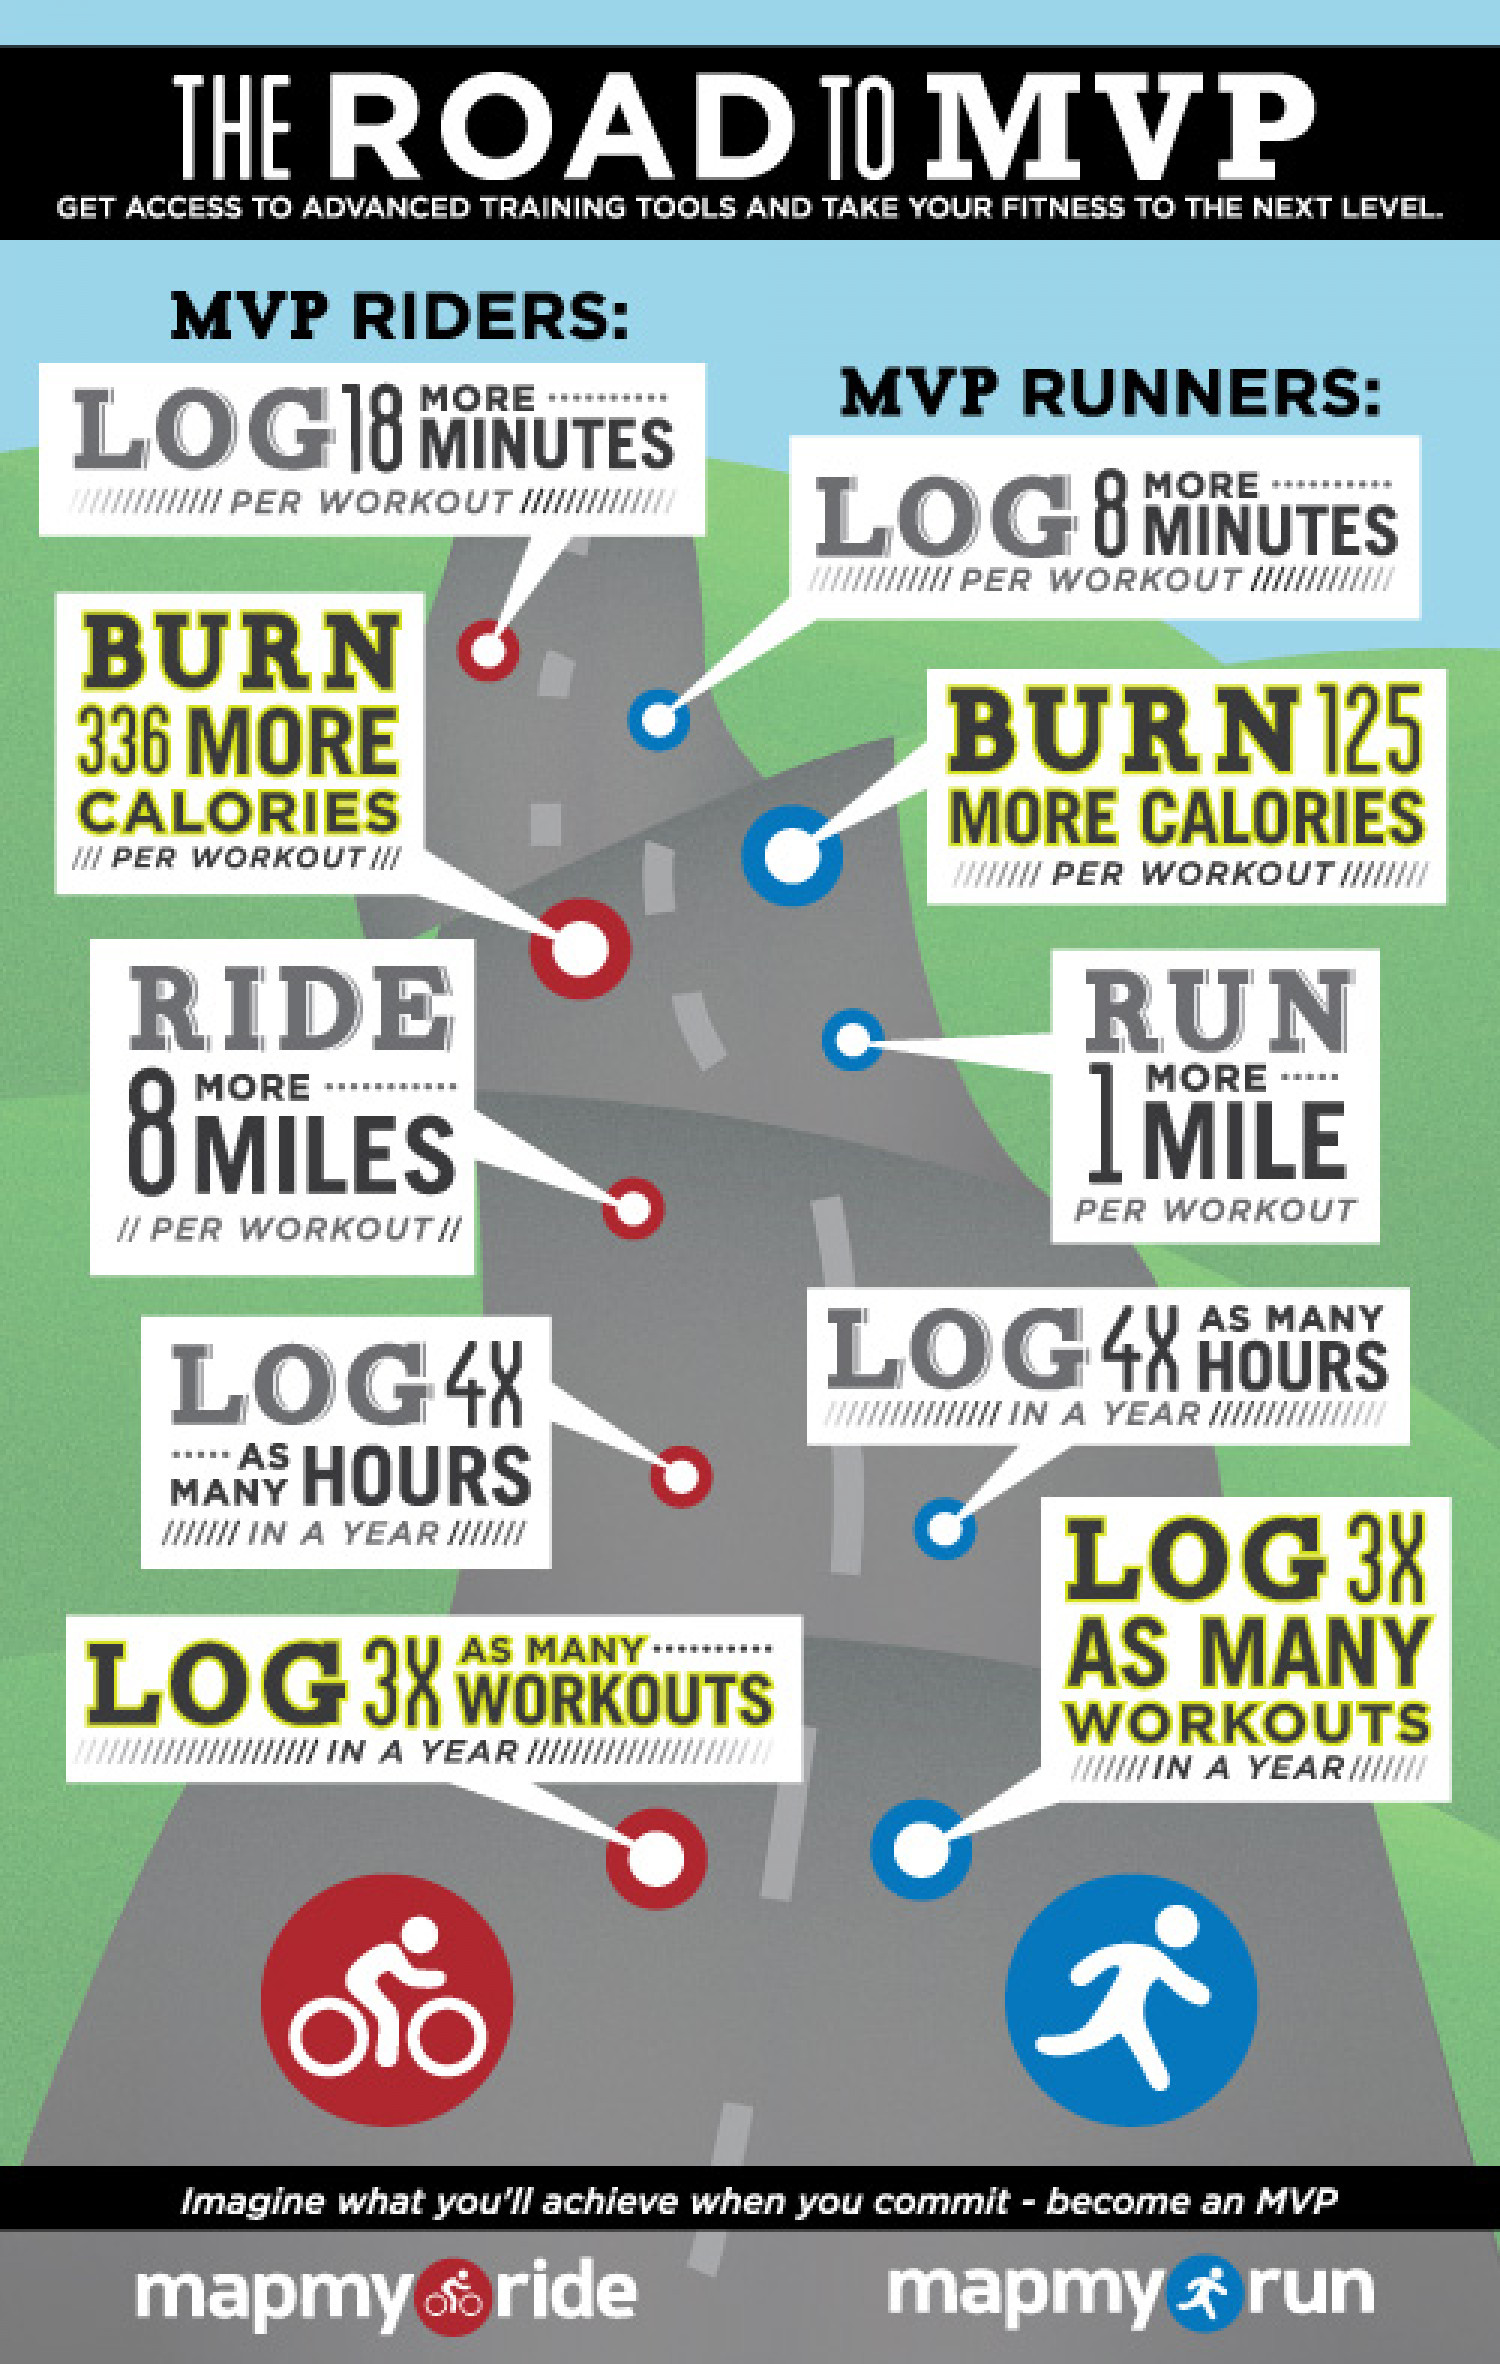 MapMyFitness Road to MVP Infographic